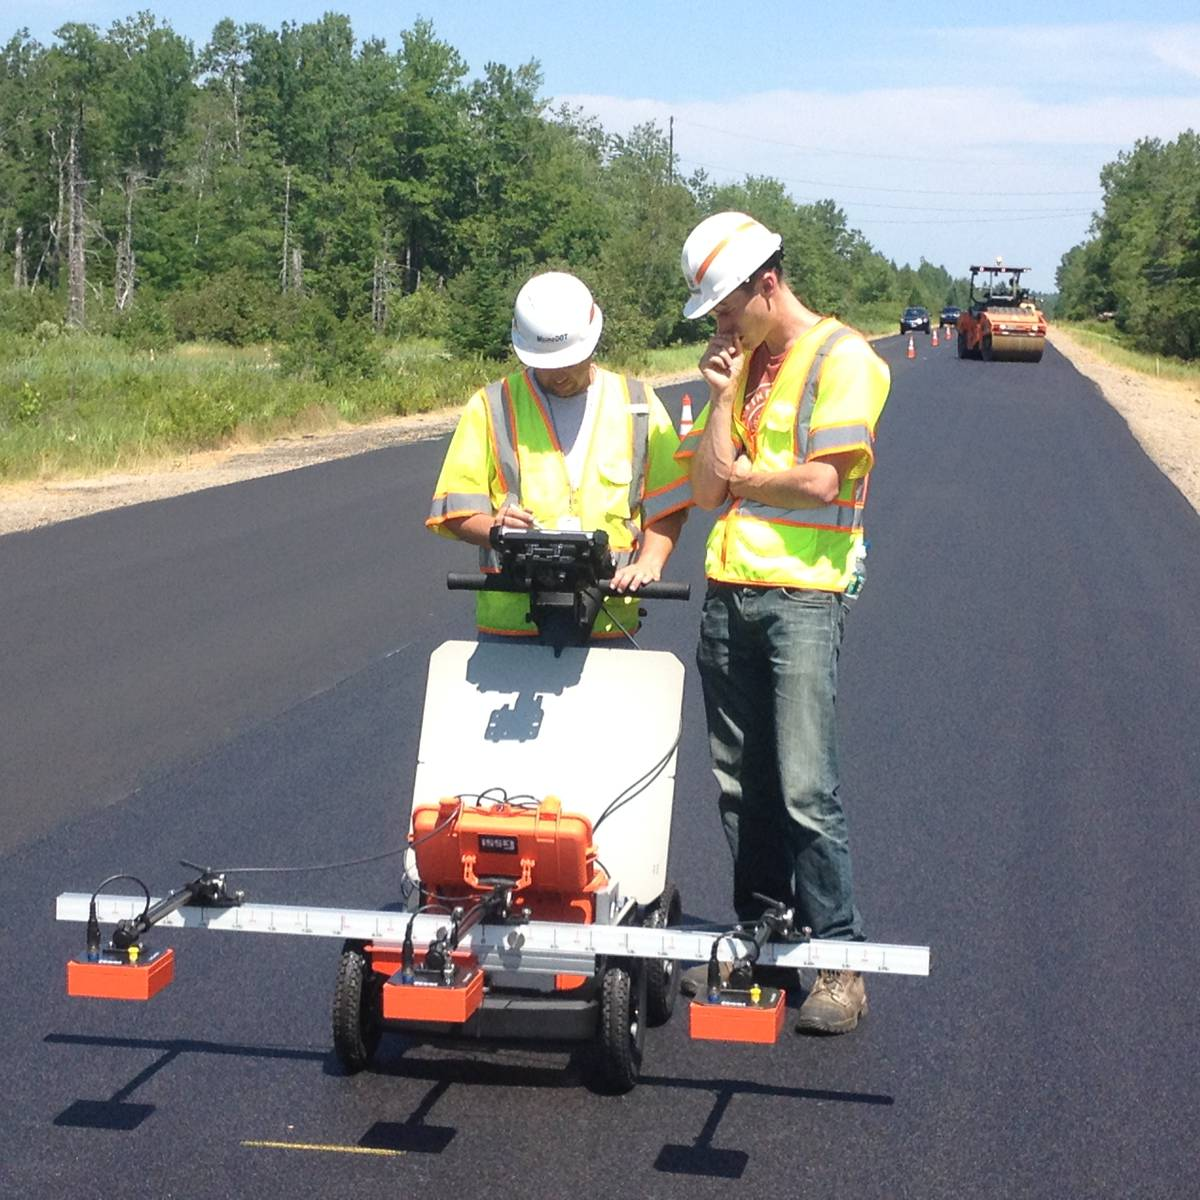 New PaveScan Asphalt Density Assessment tool ensures pavement life and quality